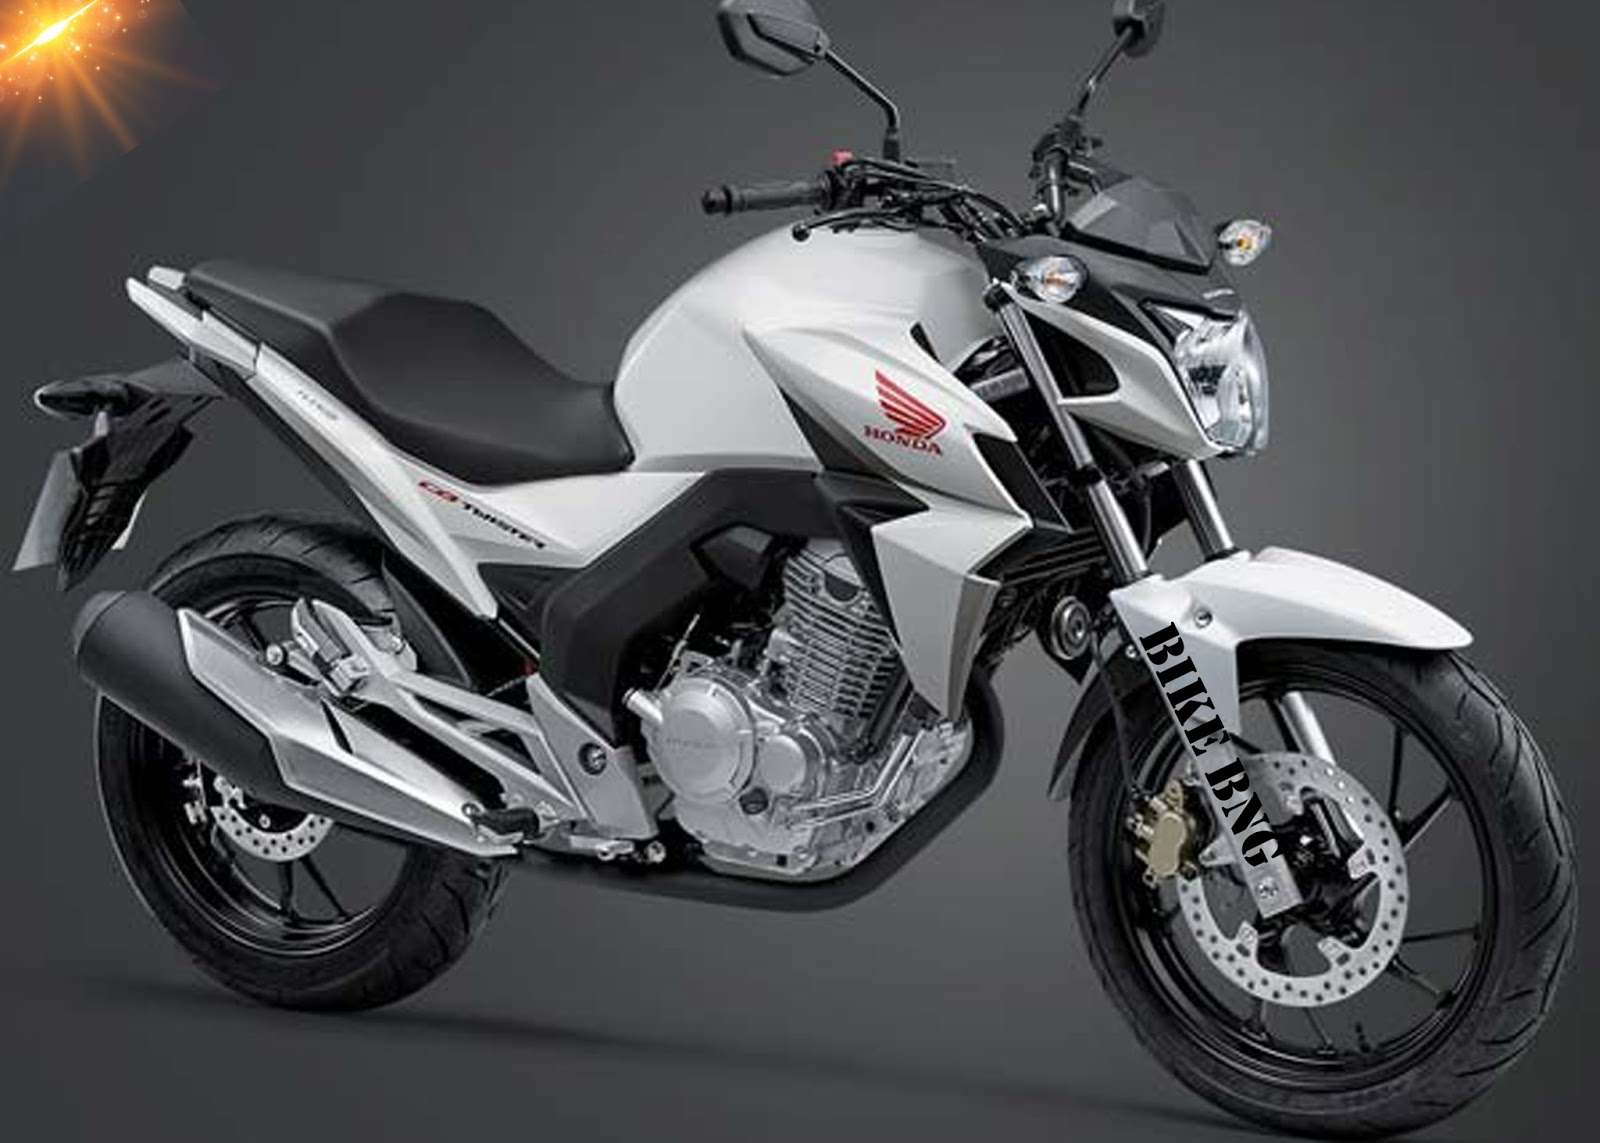 2016 Honda CB Twister 250 Has Been Launched in Brazil